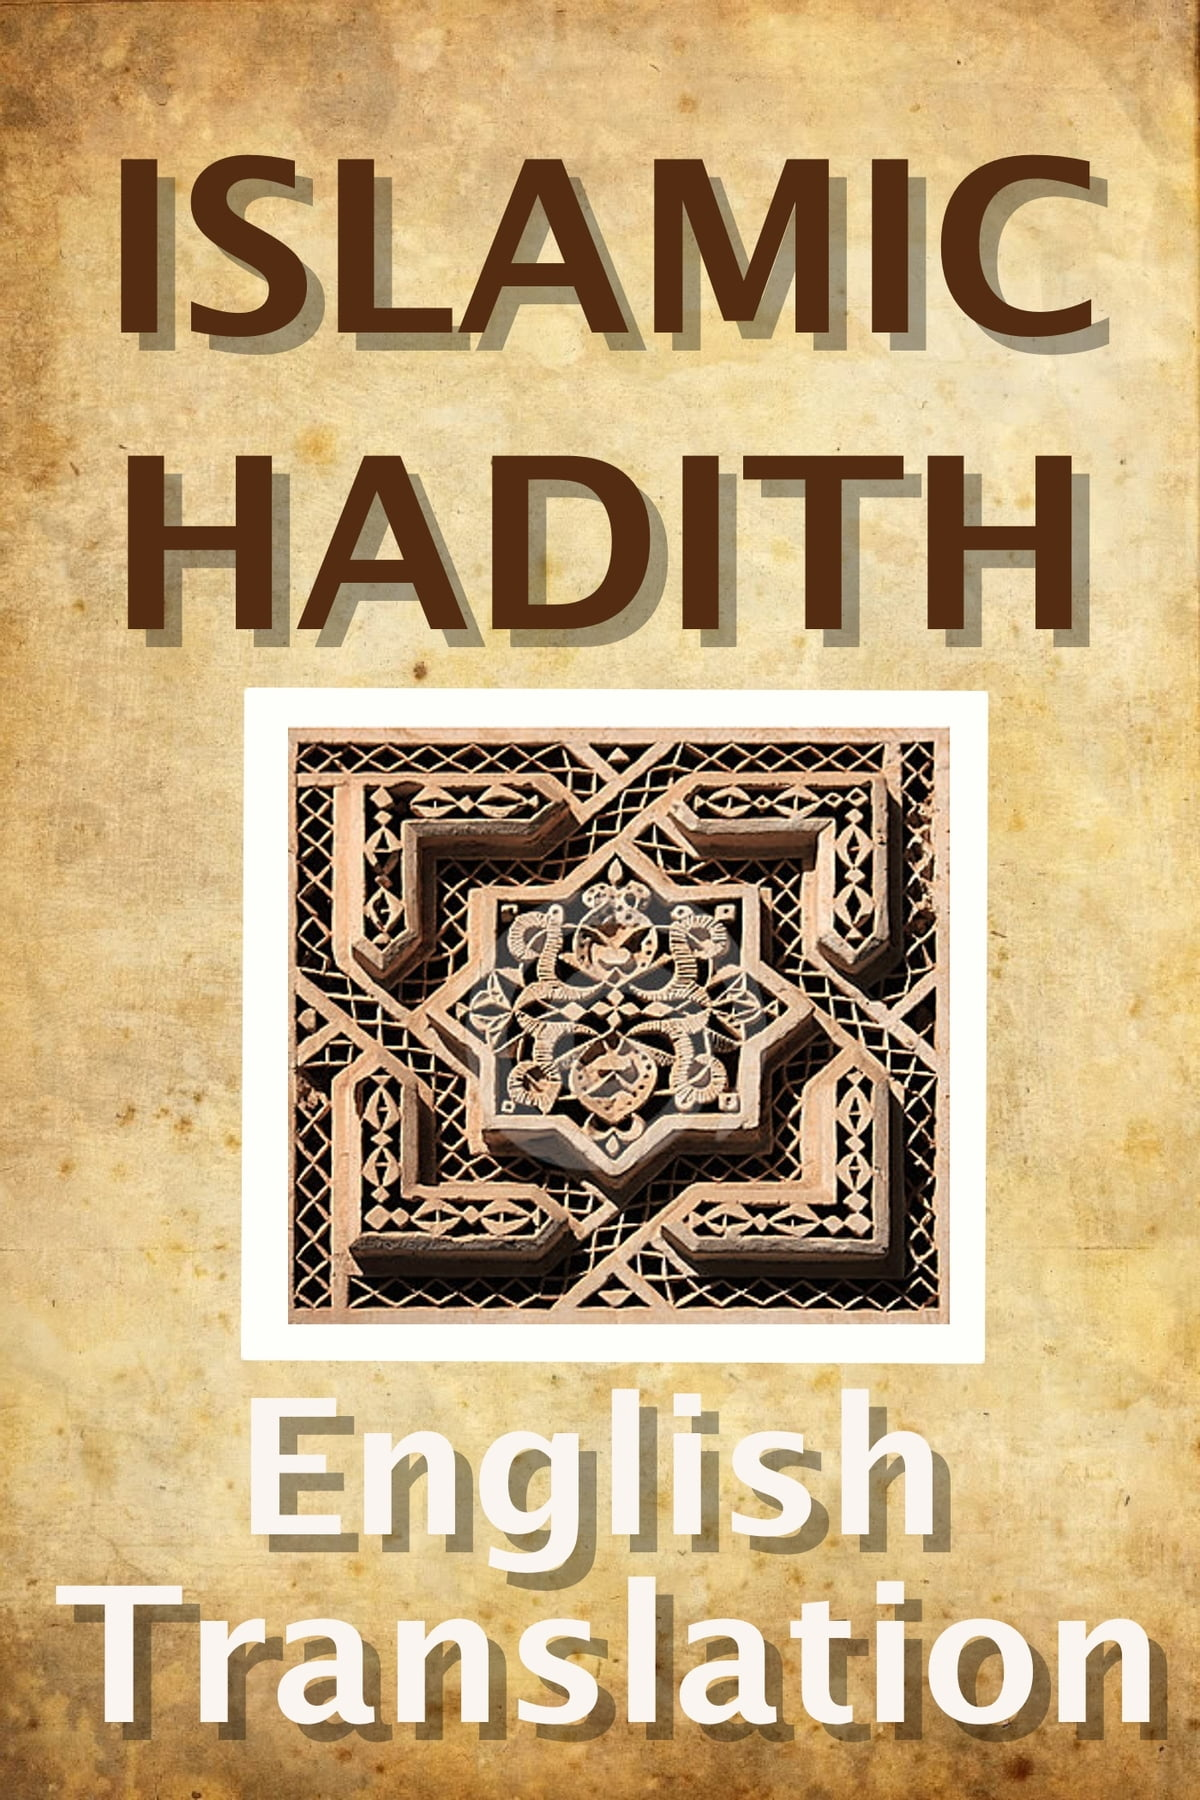 Islamic Hadith (English Translation) ebook by Kaitlyn Chick - Rakuten Kobo